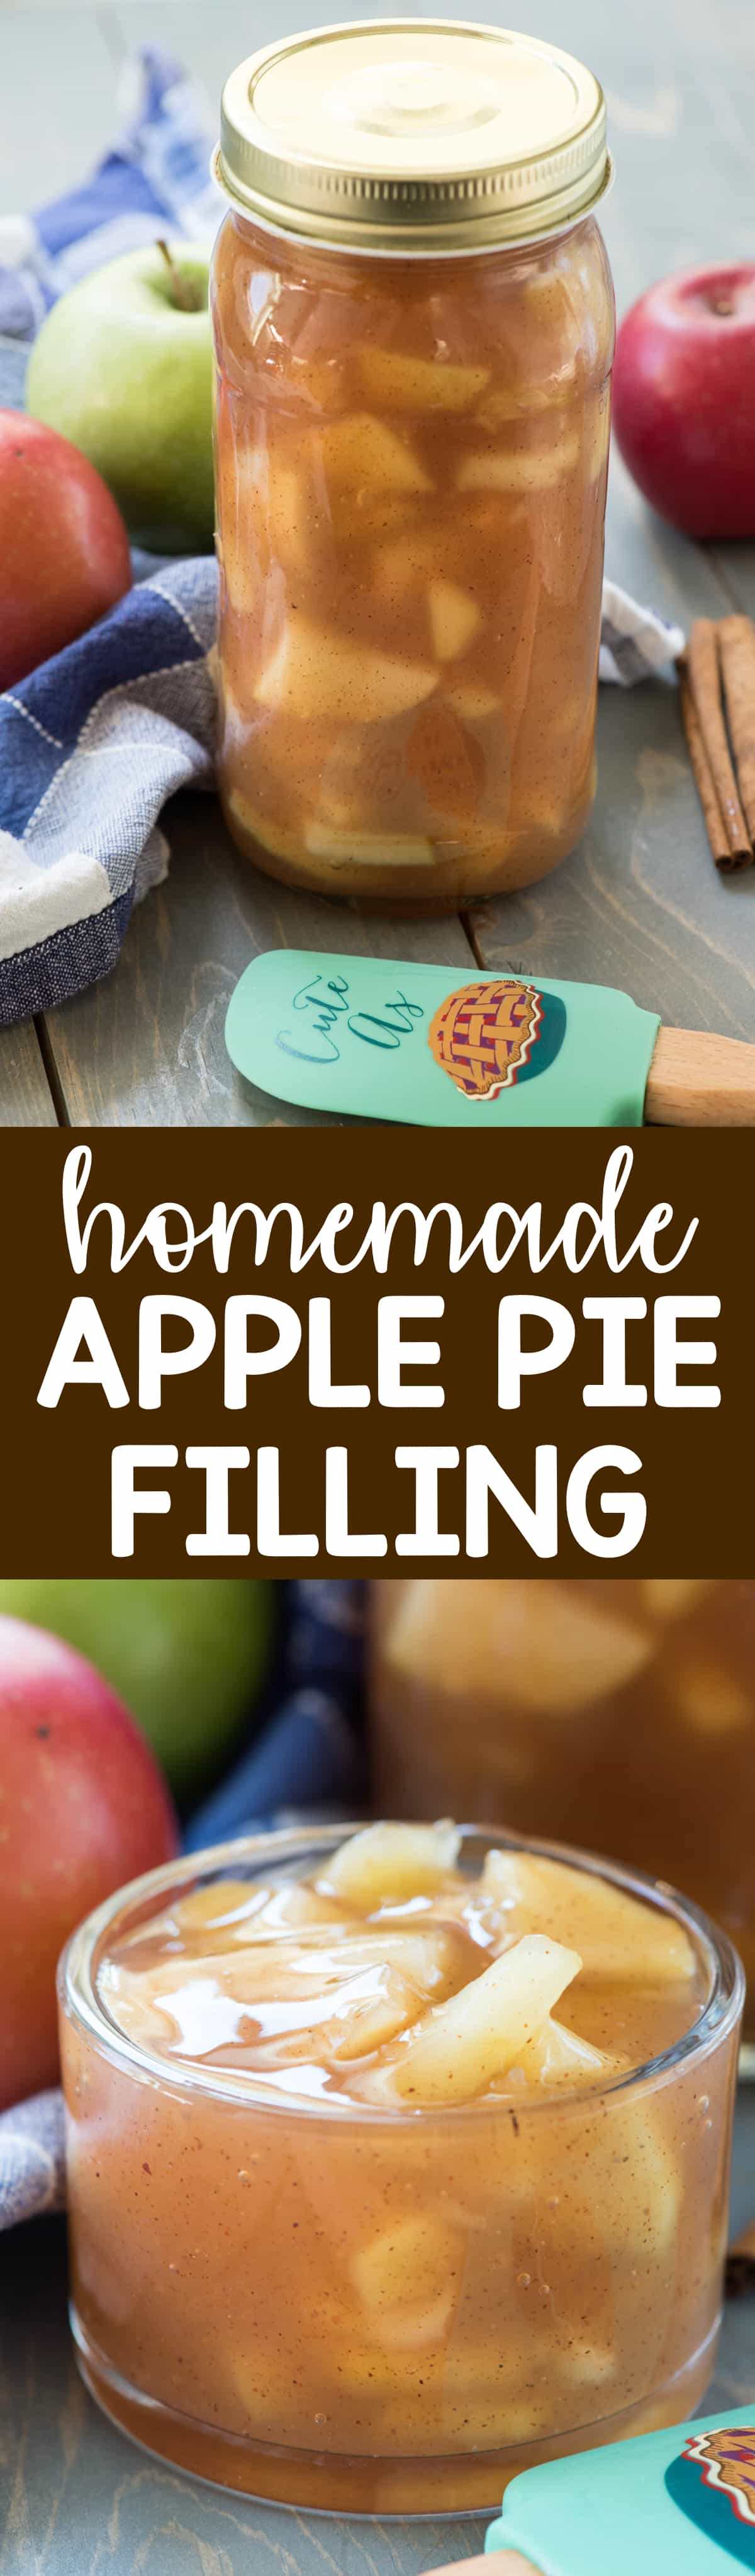 Homemade Apple Pie Filling - this easy recipe takes just a few minutes and tastes so much better than canned pie filling! Keep it in your freezer for when you want pie filling ASAP!